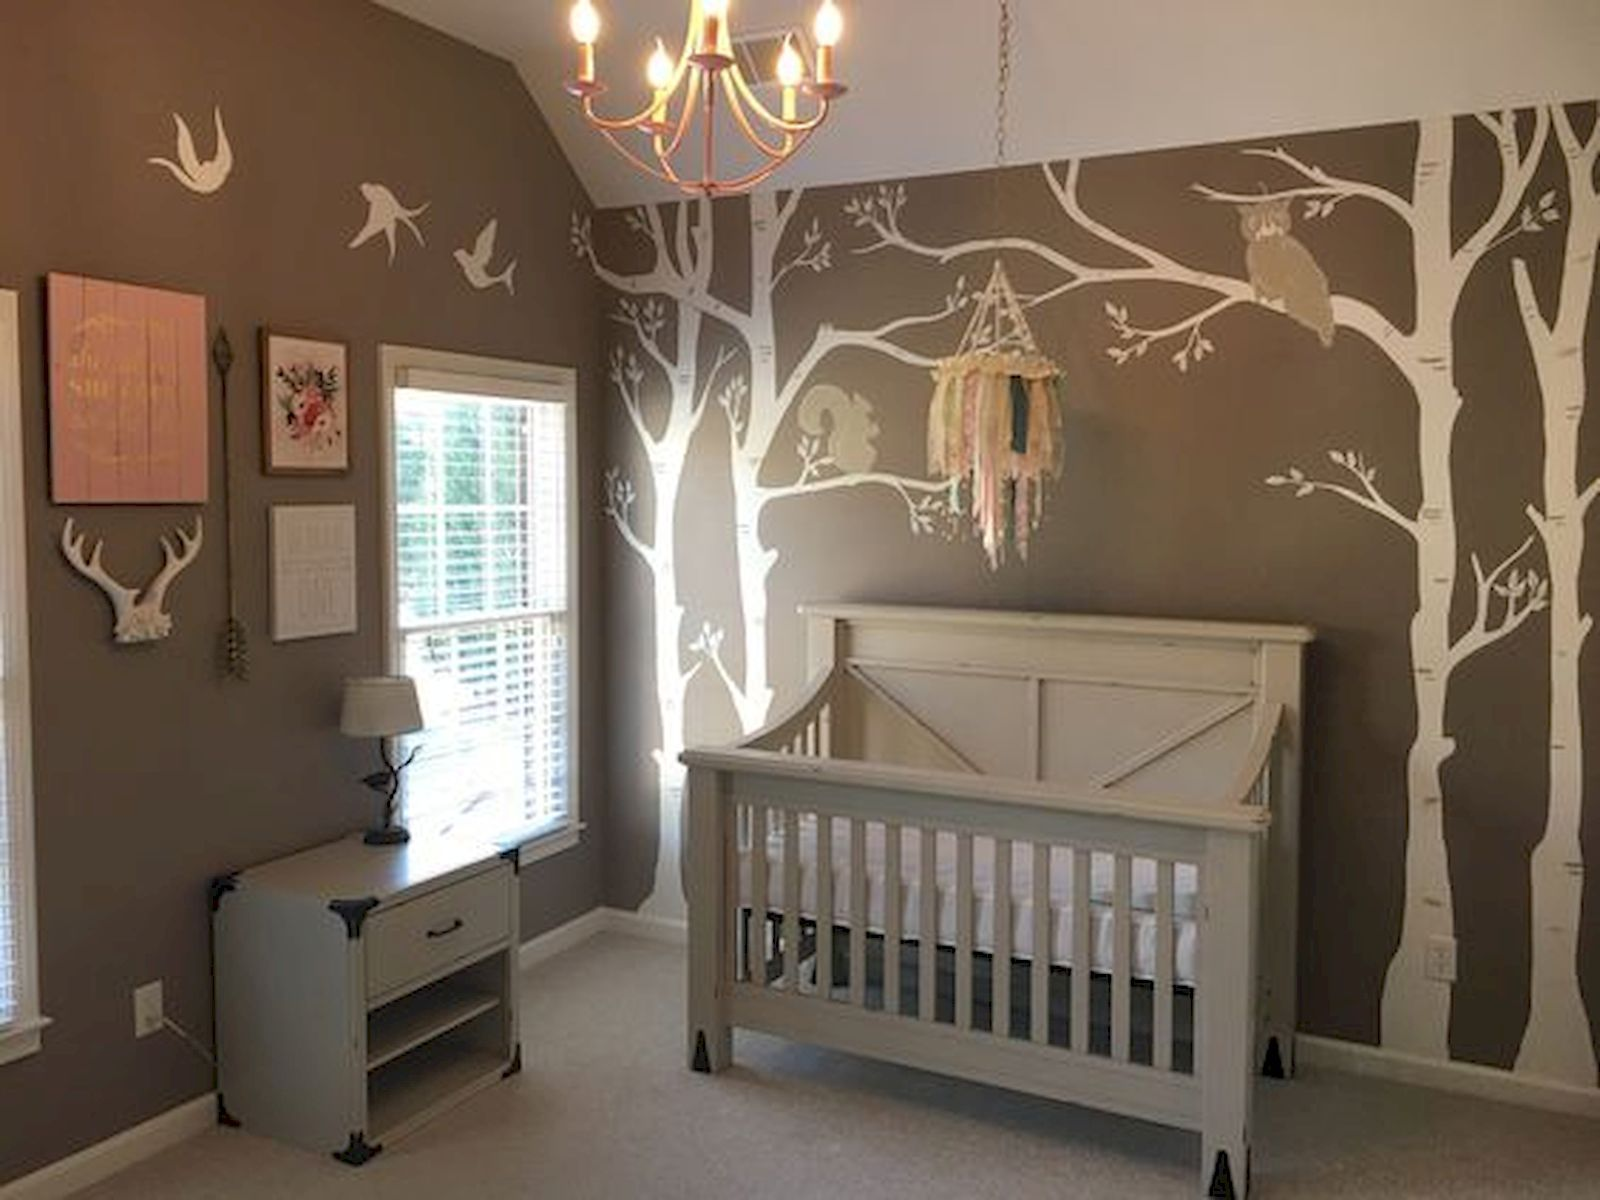 Gorgeous 45 Nursery Room Woodland Ideas Source Https Worldecor Co